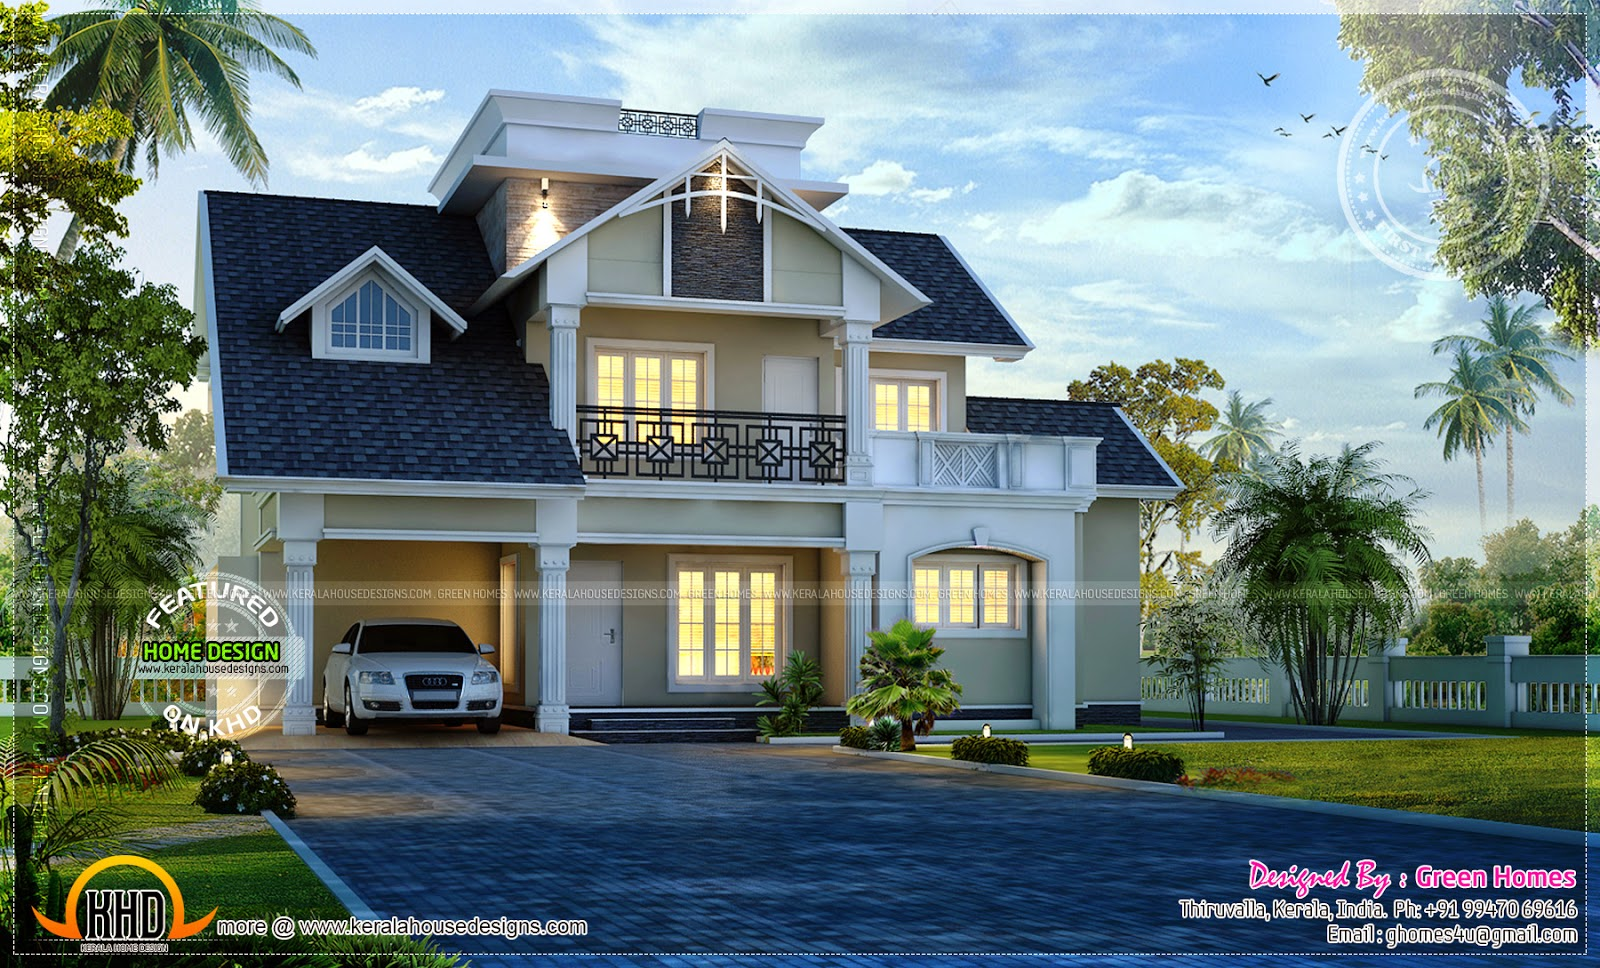 Awesome modern house exterior kerala home design and for Awesome home designs